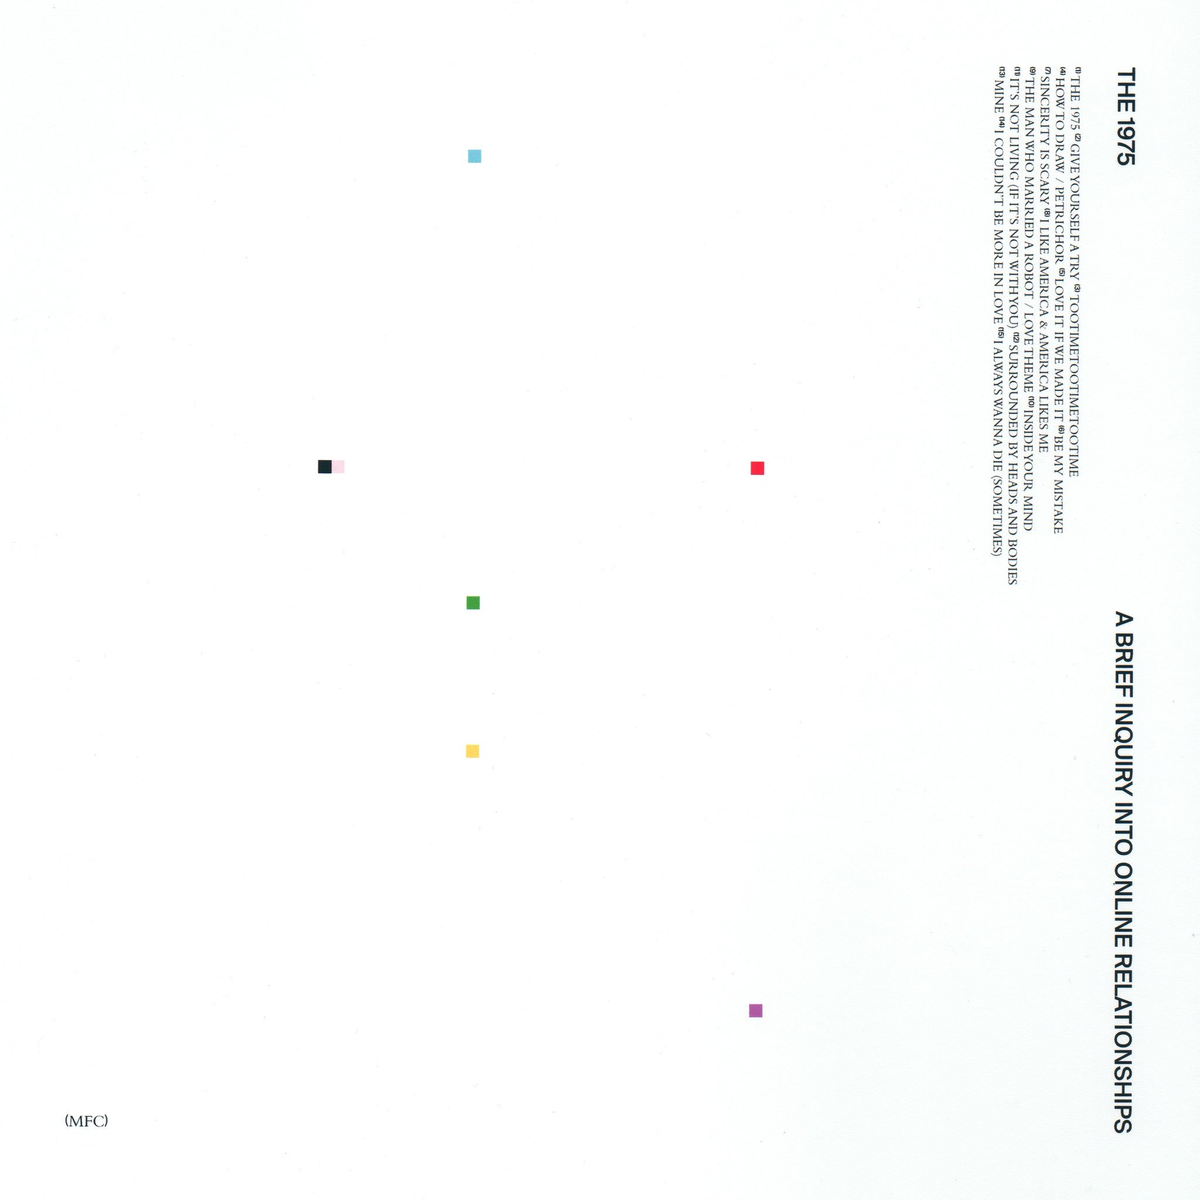 ABIIOR -The 1975 (2018) Album Download by obviouslysarah on